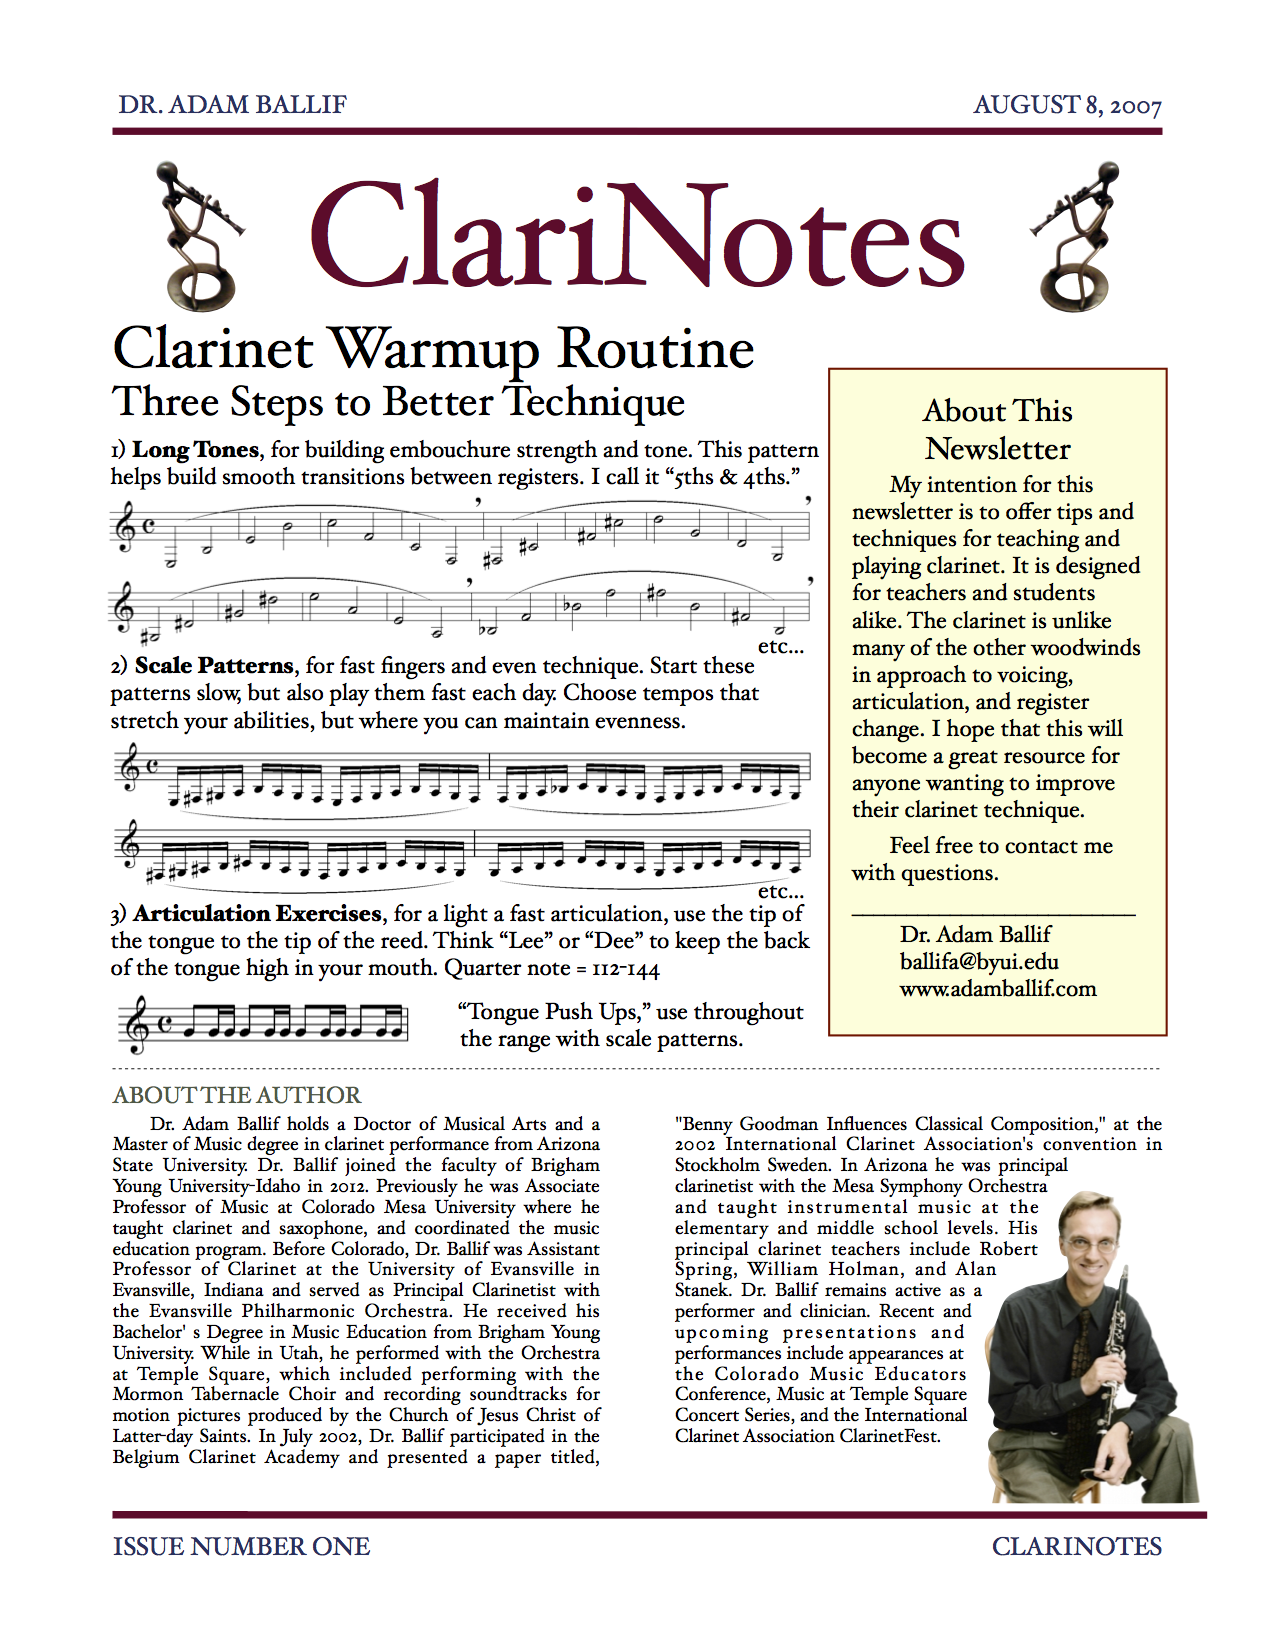 Issue One - Clarinet Warmup